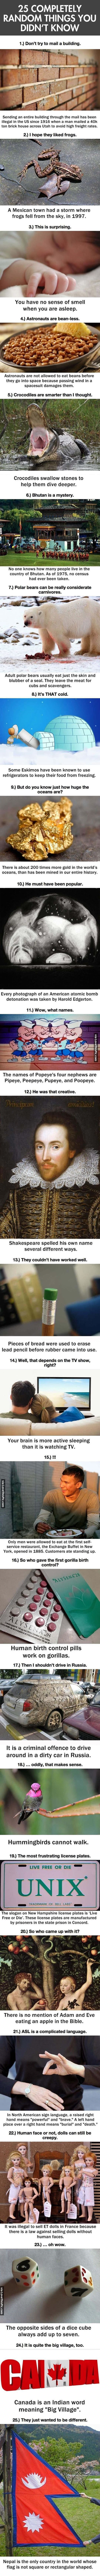 25 Random Things You Didn't Know cool unusual interesting random fact facts did you know fun facts